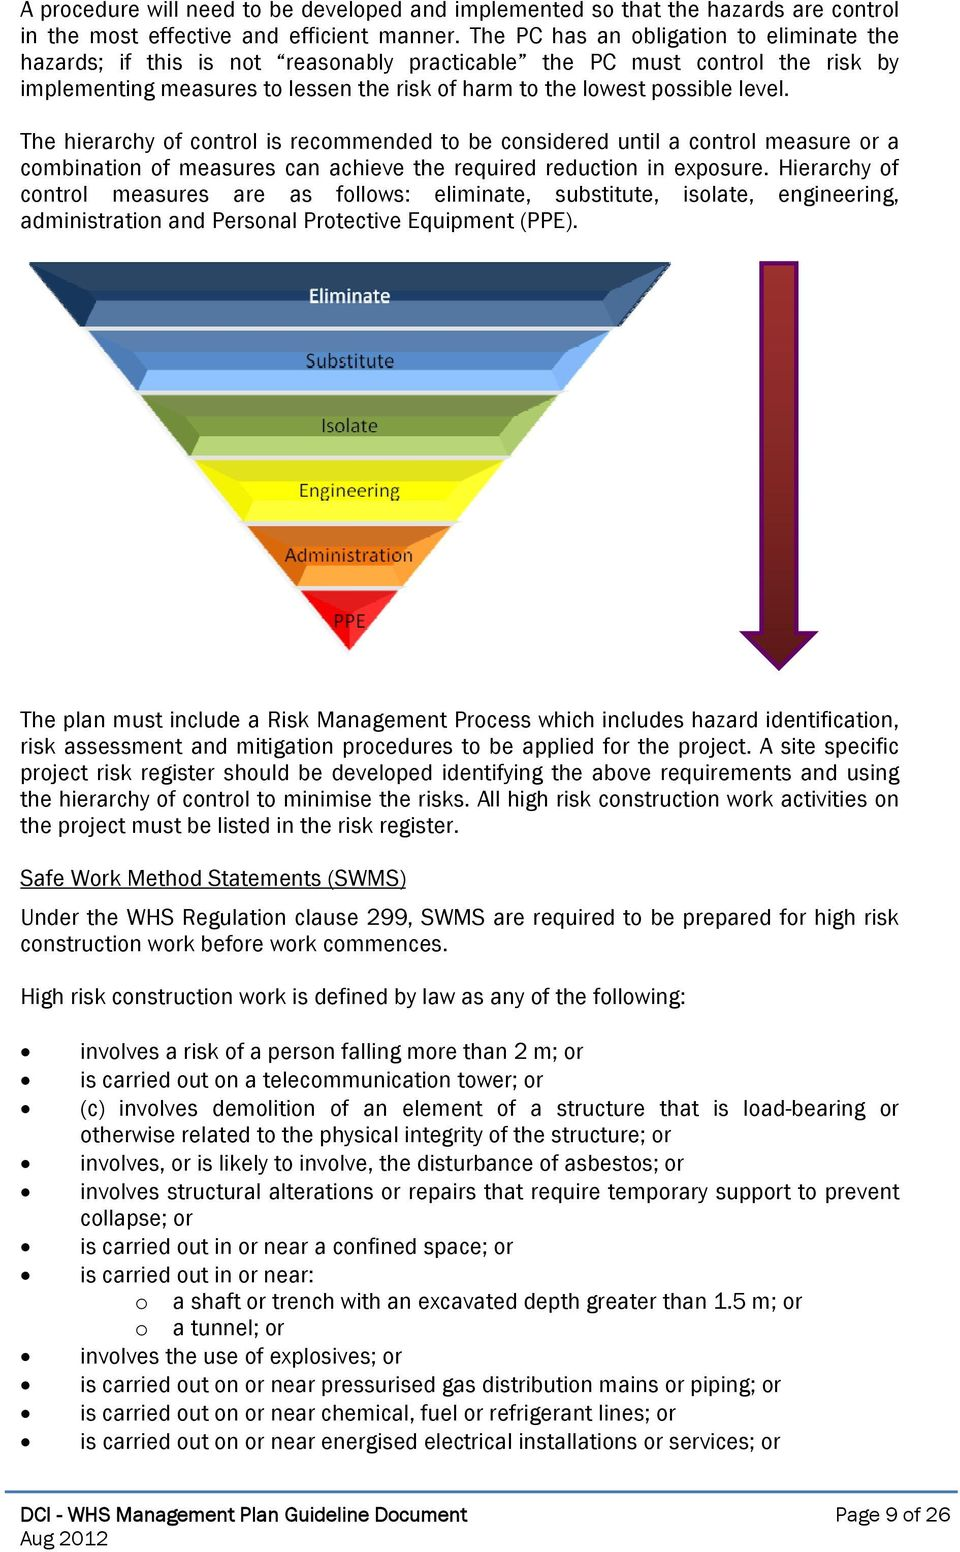 The hierarchy of control is recommended to be considered until a control measure or a combination of measures can achieve the required reduction in exposure.